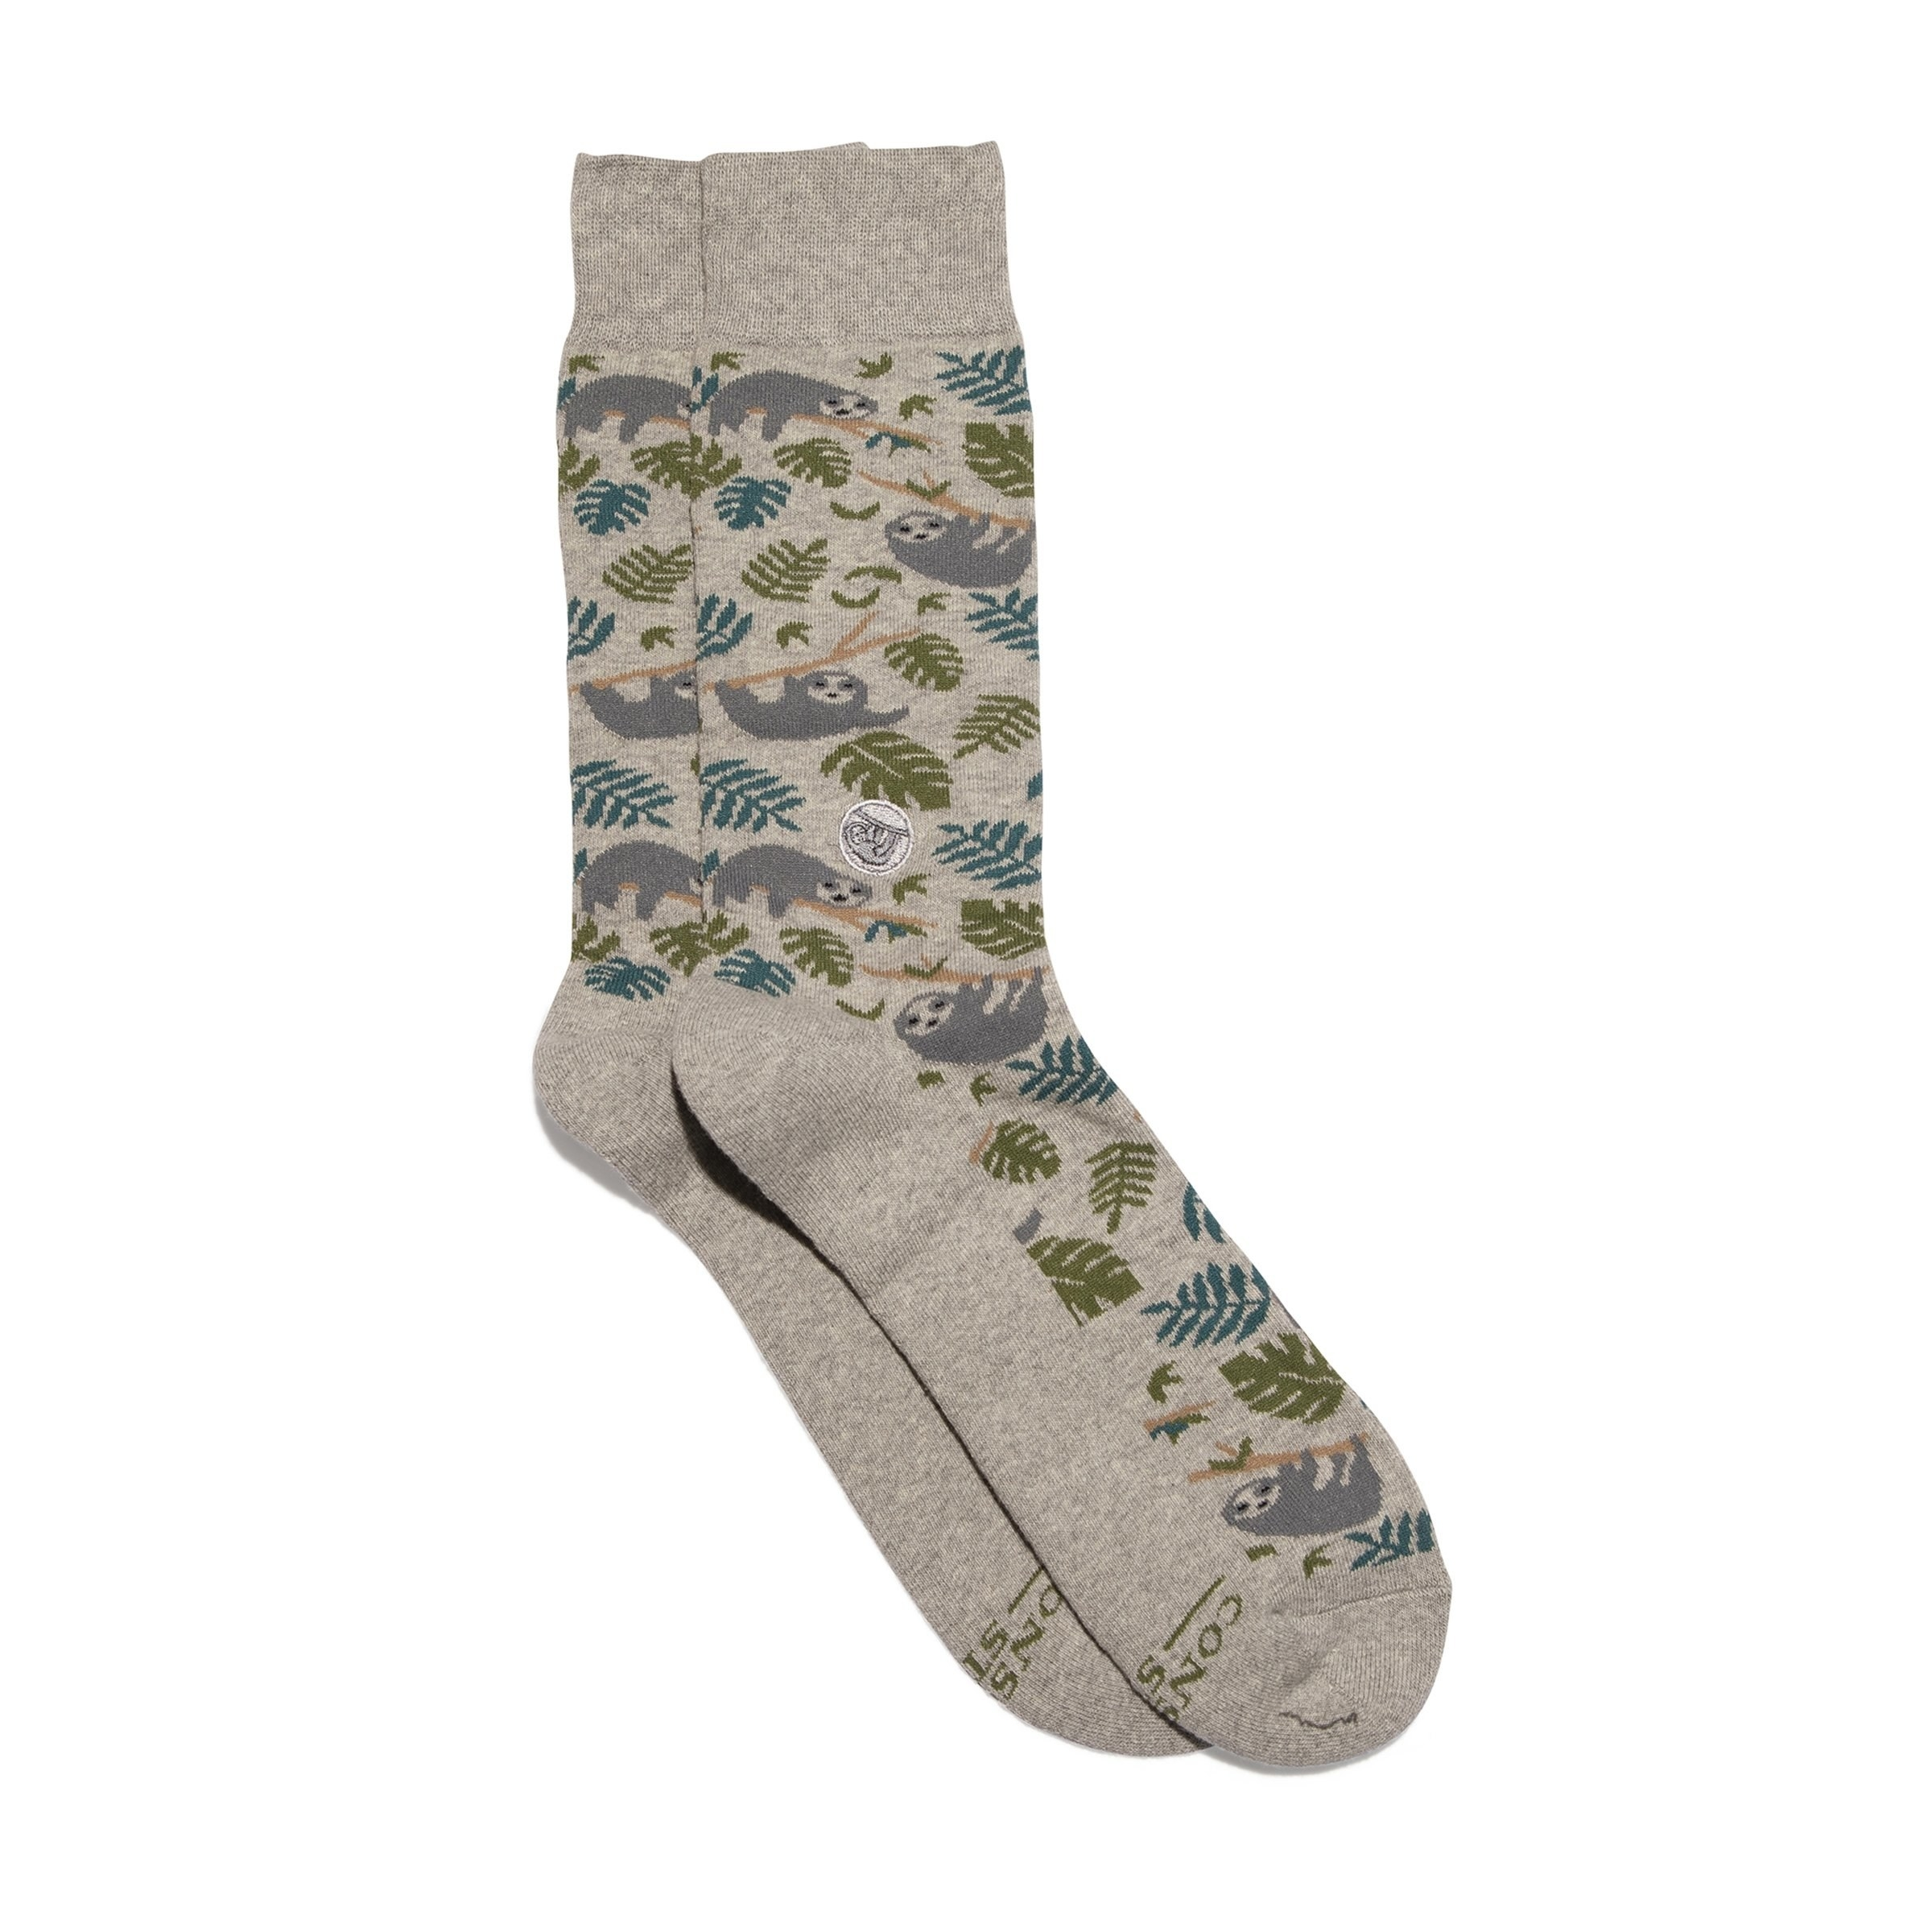 The socks covered in cute sloth and leaf illustrations